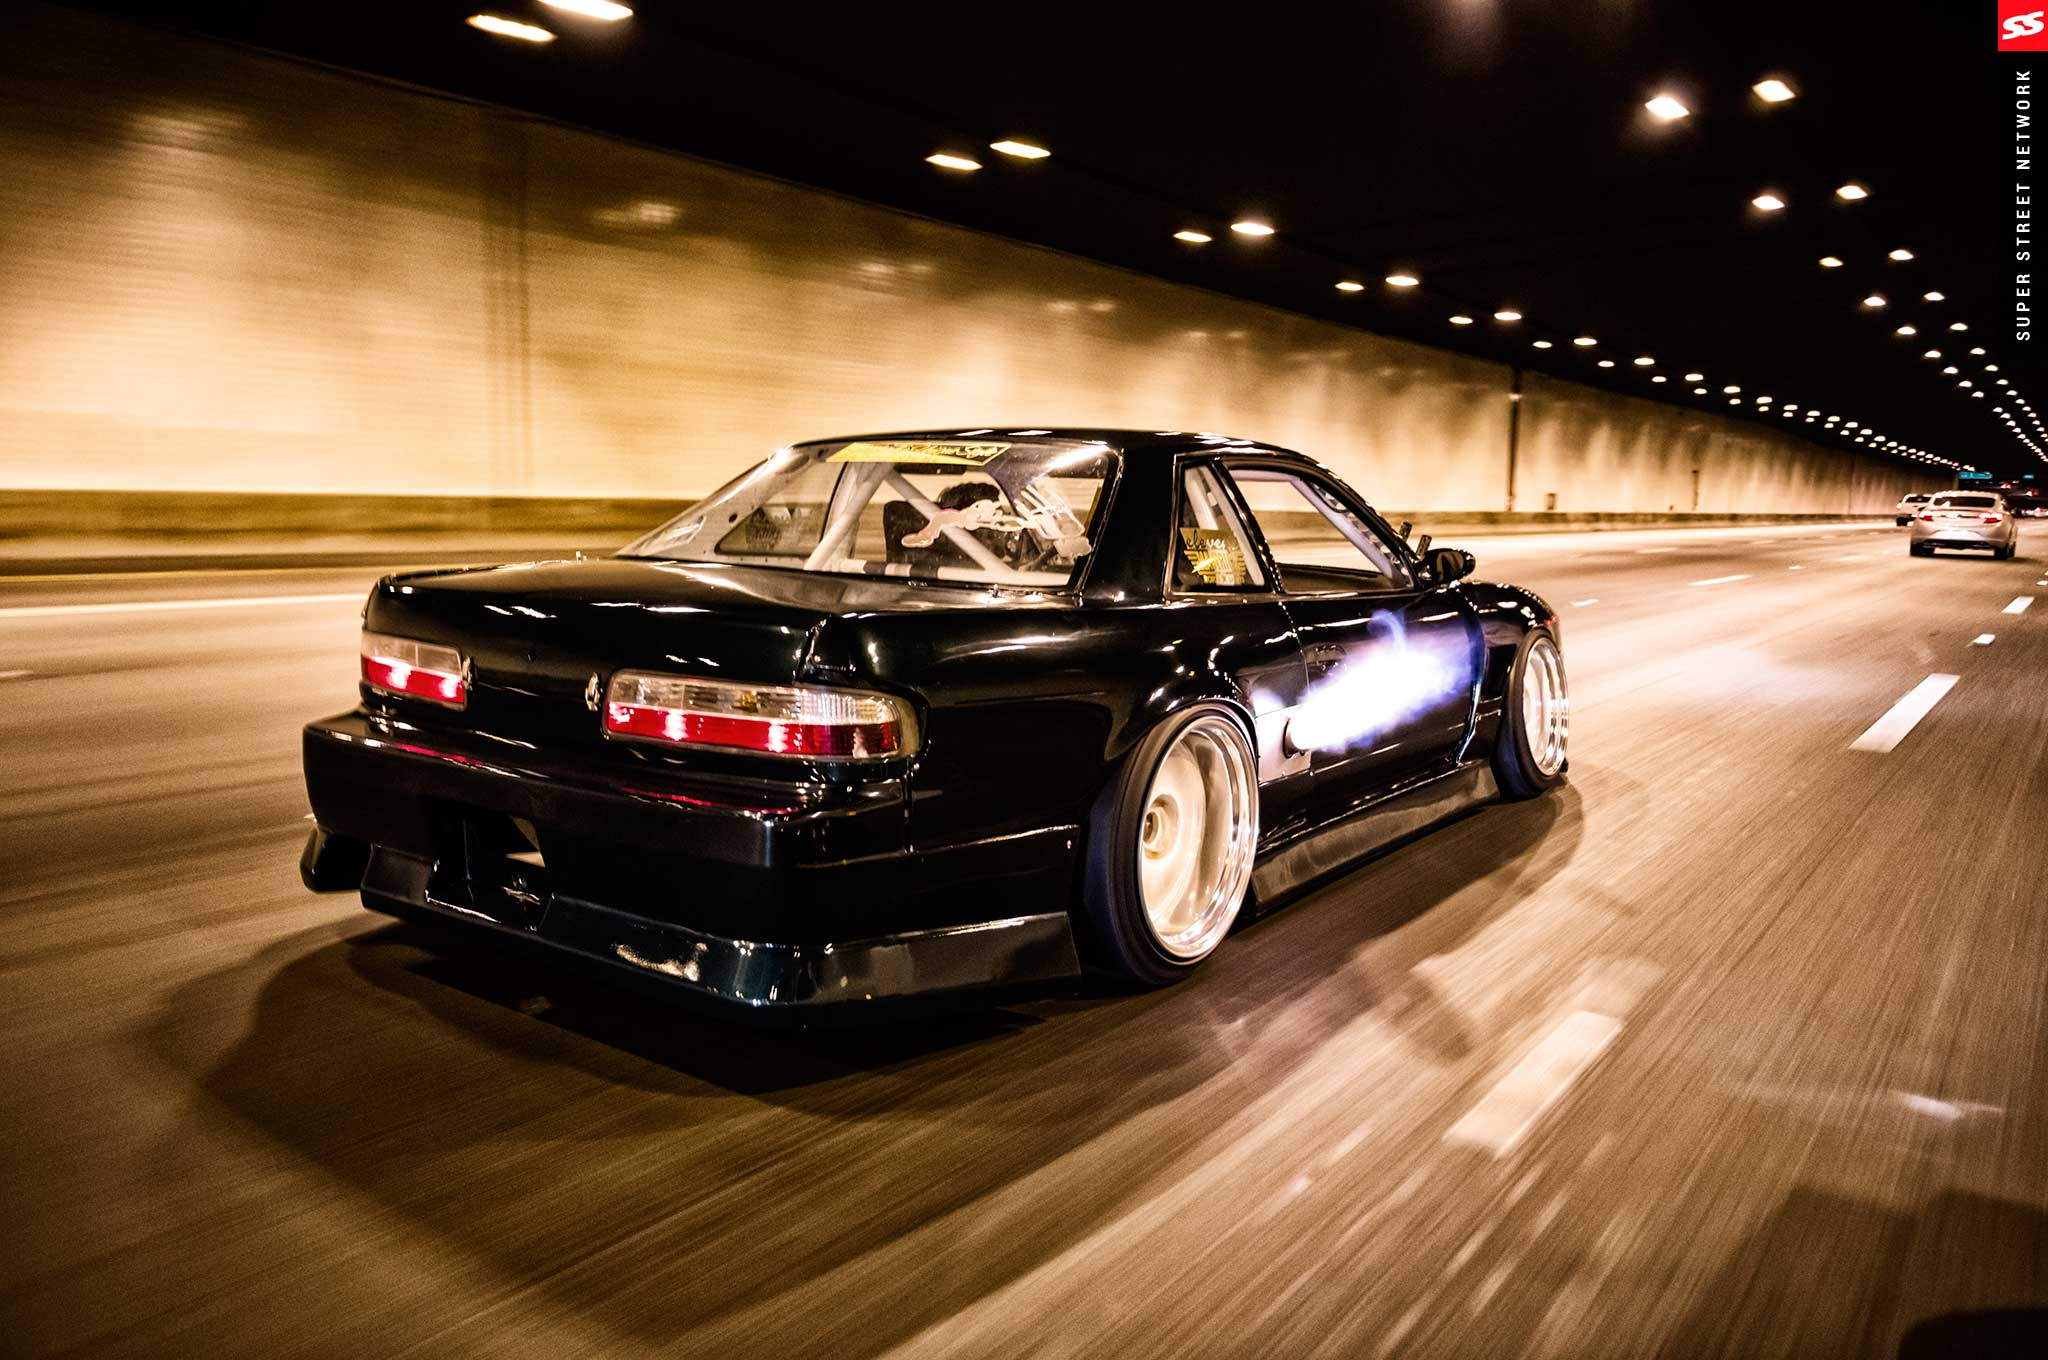 2JZ-Powered 1991 Nissan S13 Built to Destroy